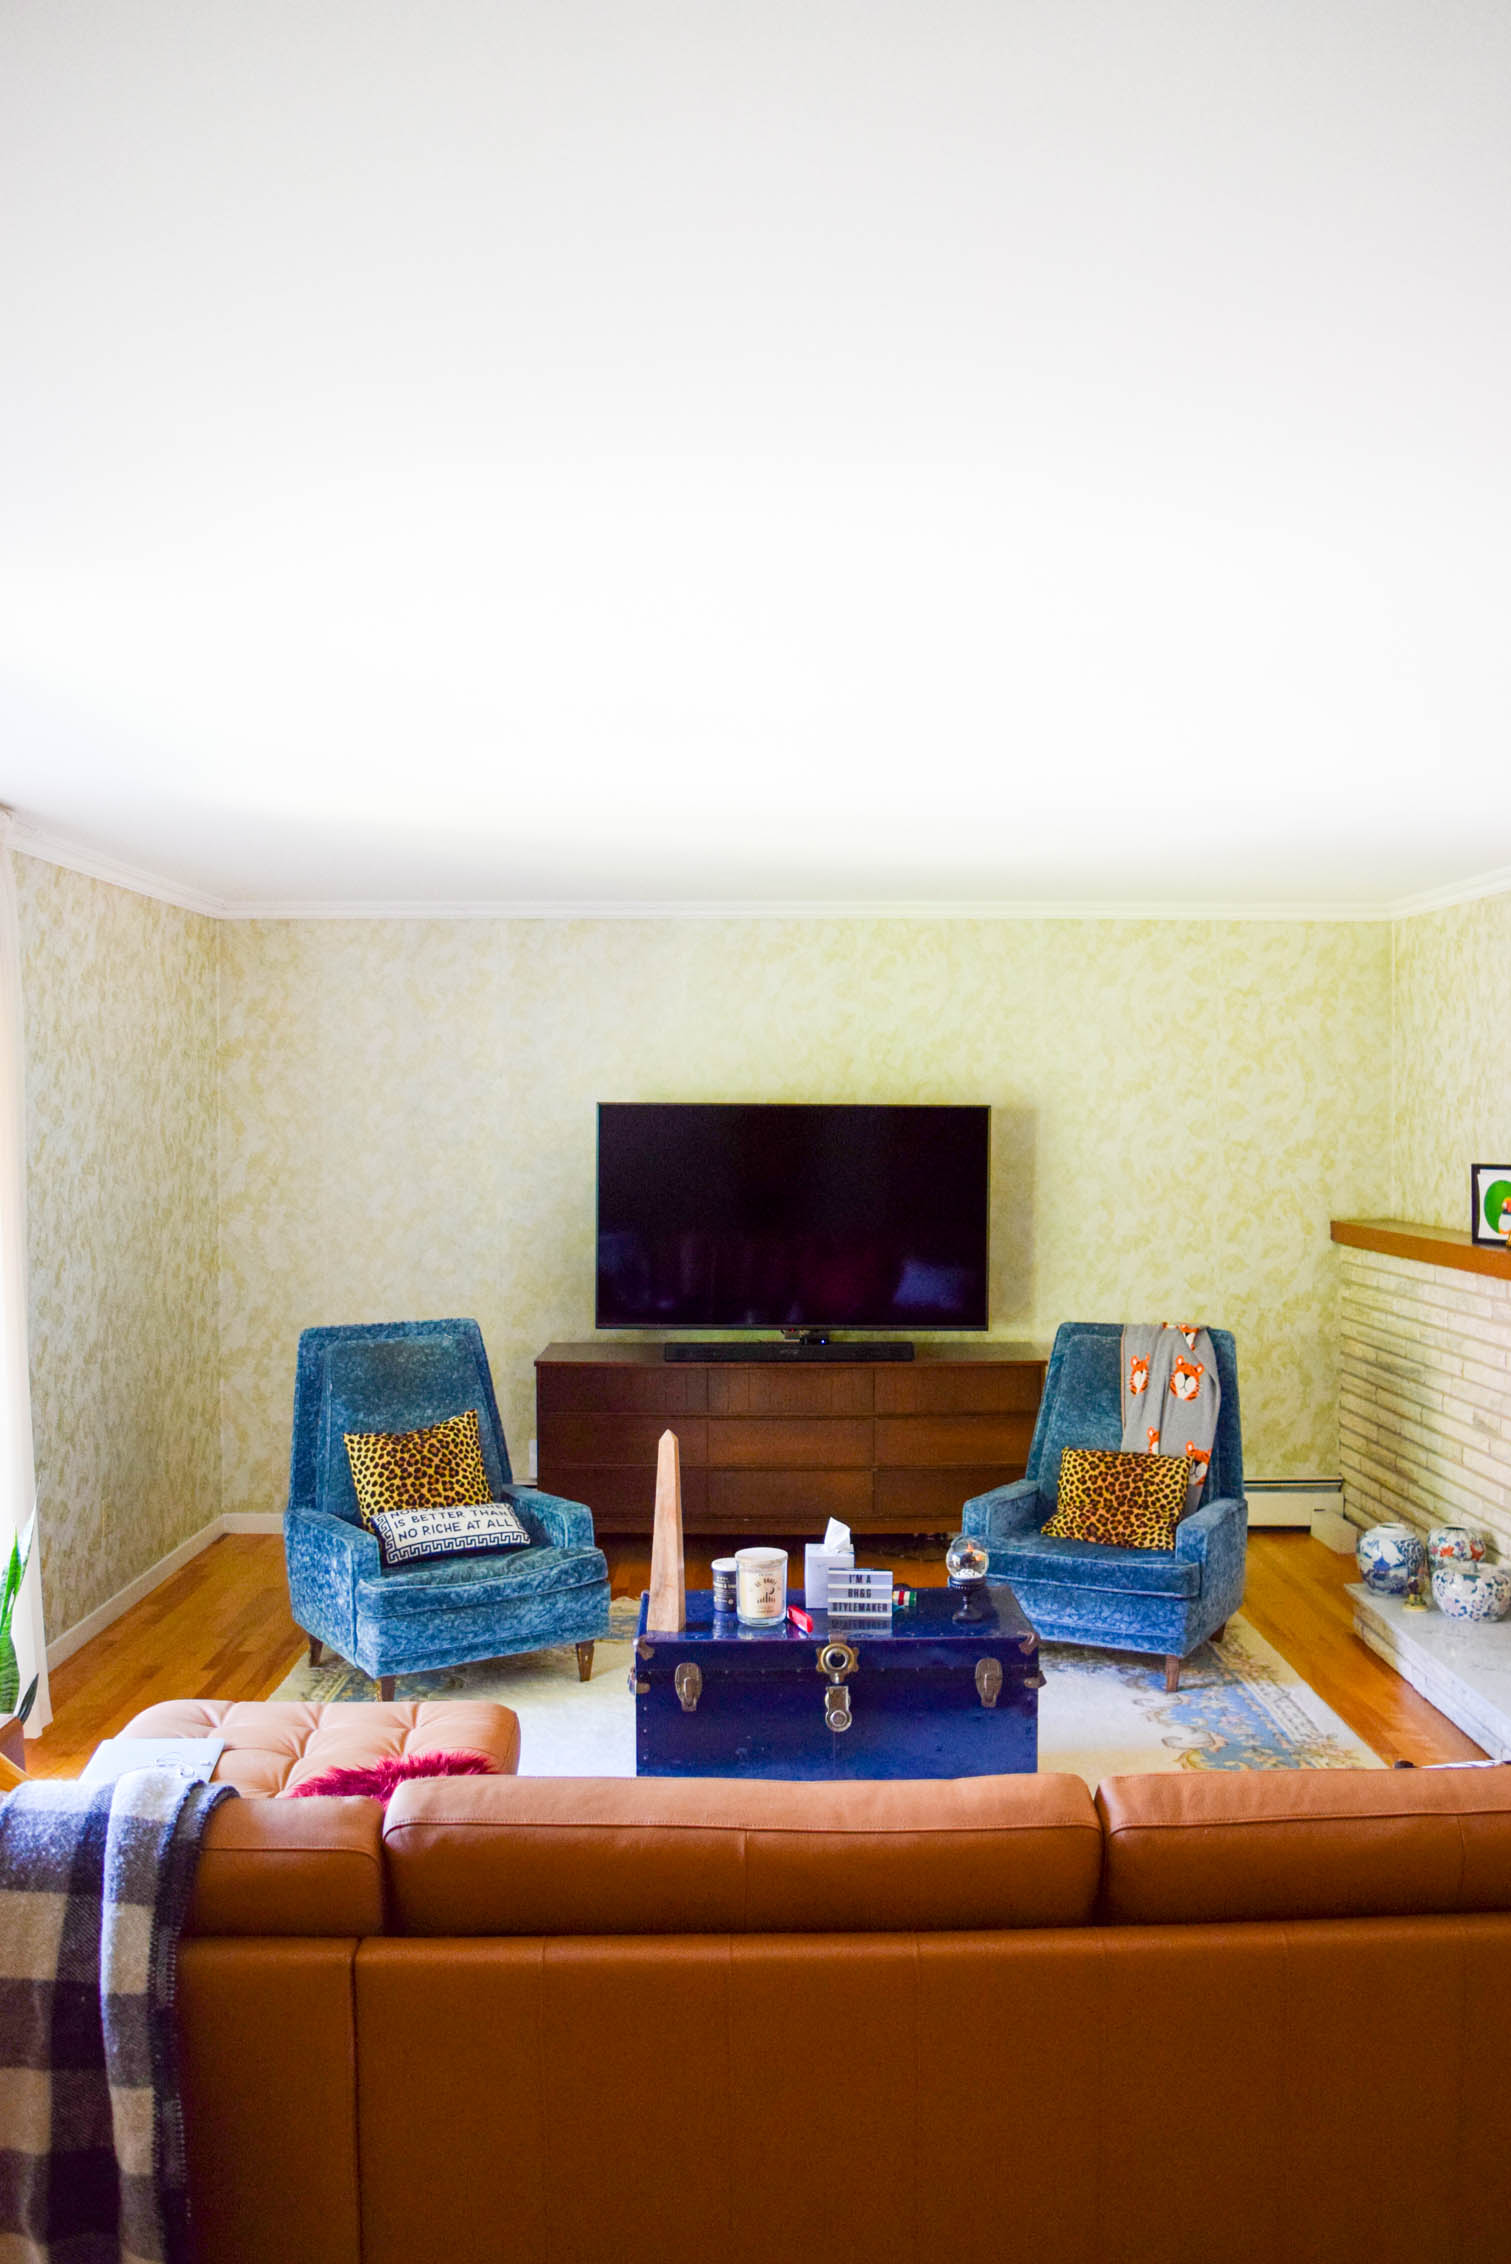 living room facing two blue chairs and a TV